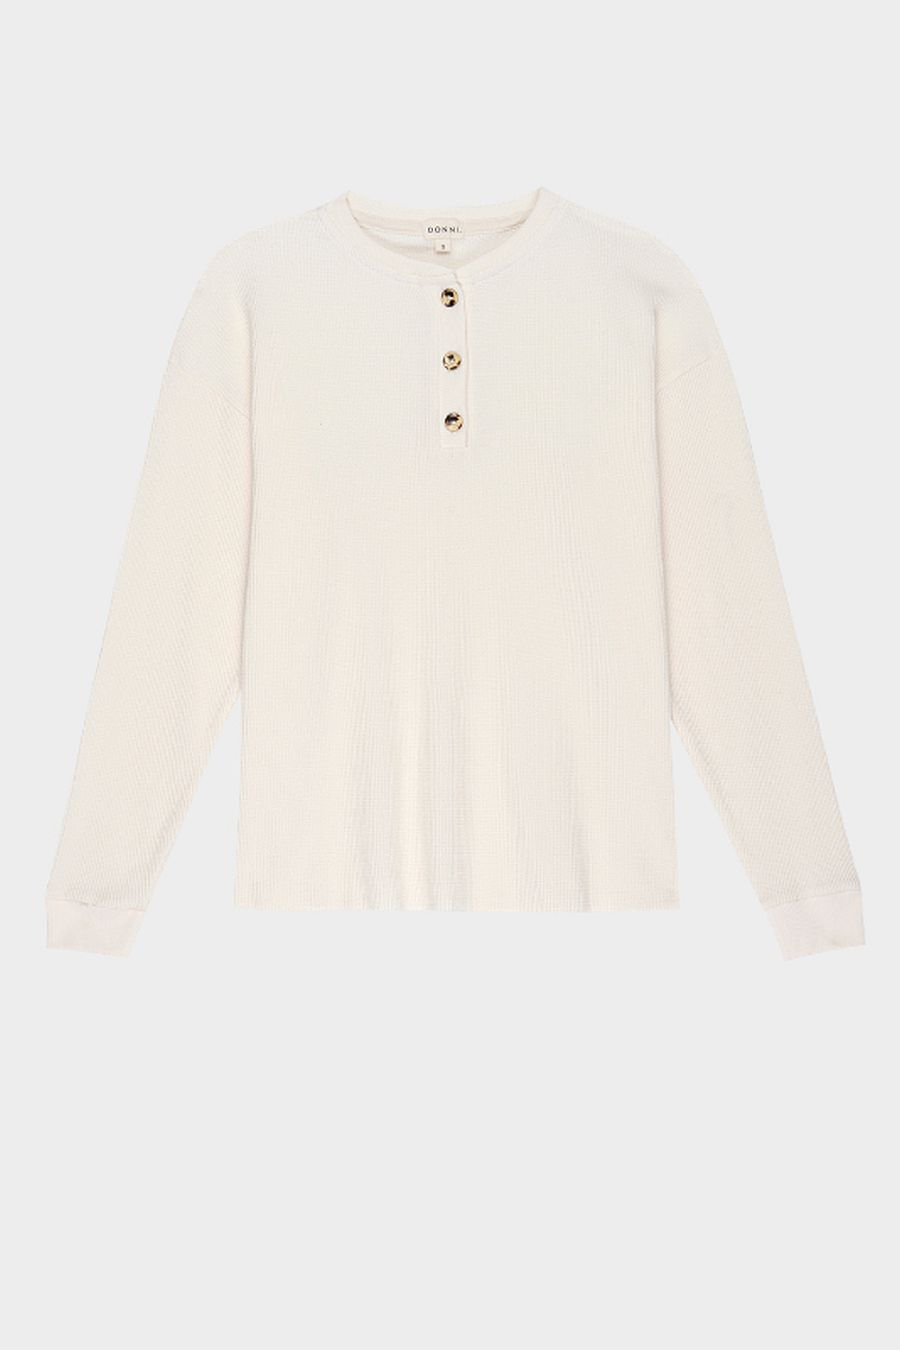 DONNI. Thermal Henley - Creme